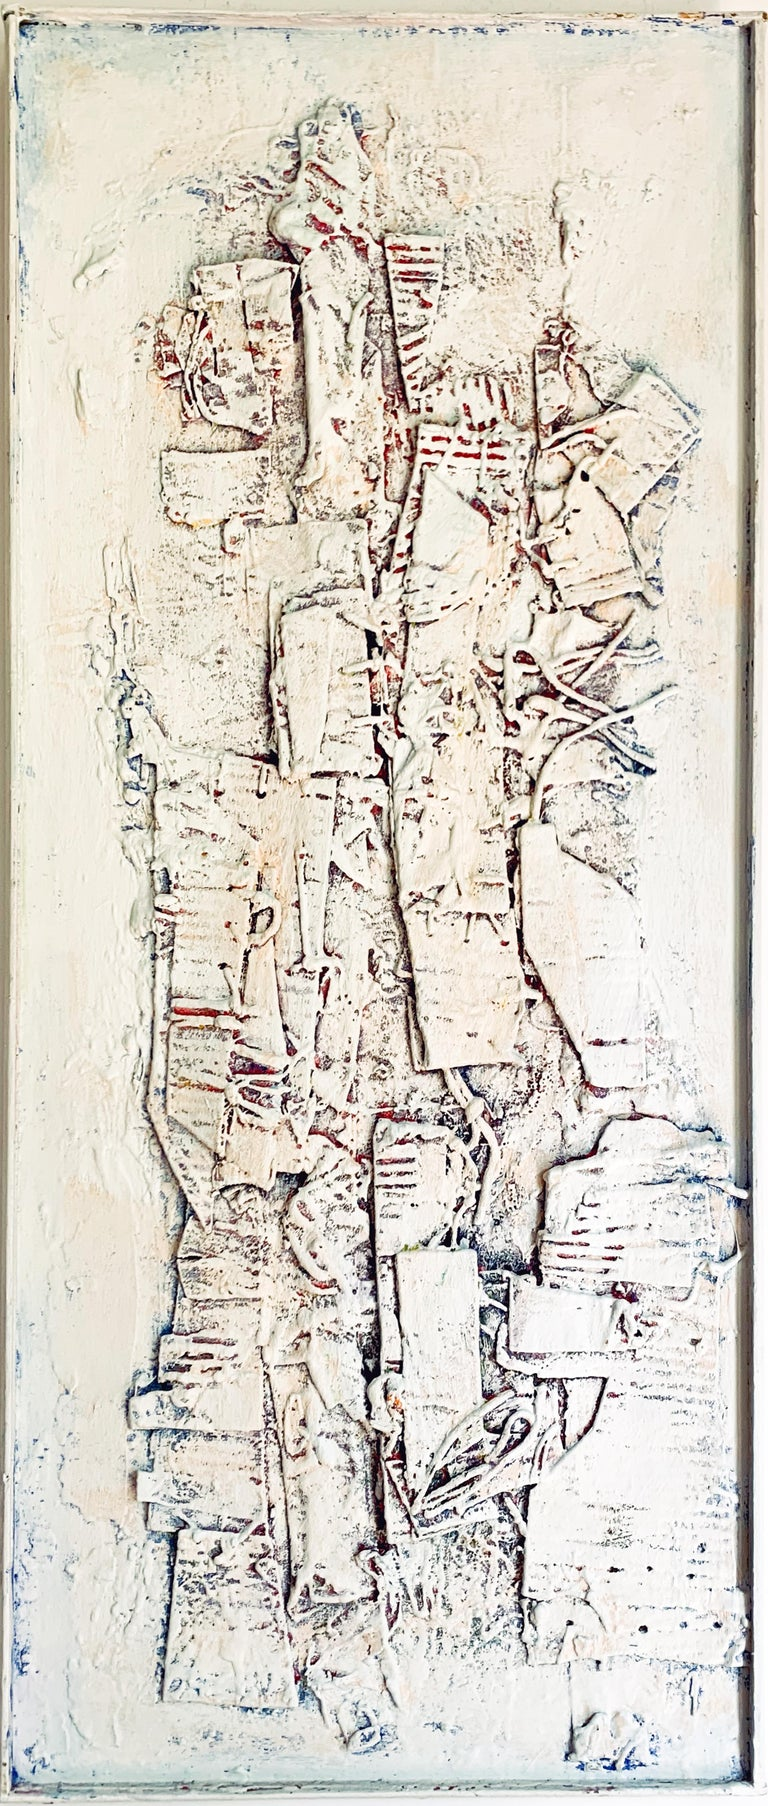 "Ronald Ahlstrom ""White Collage"", mixed media on plywood - Mixed Media Art by Ronald Ahlstrom"